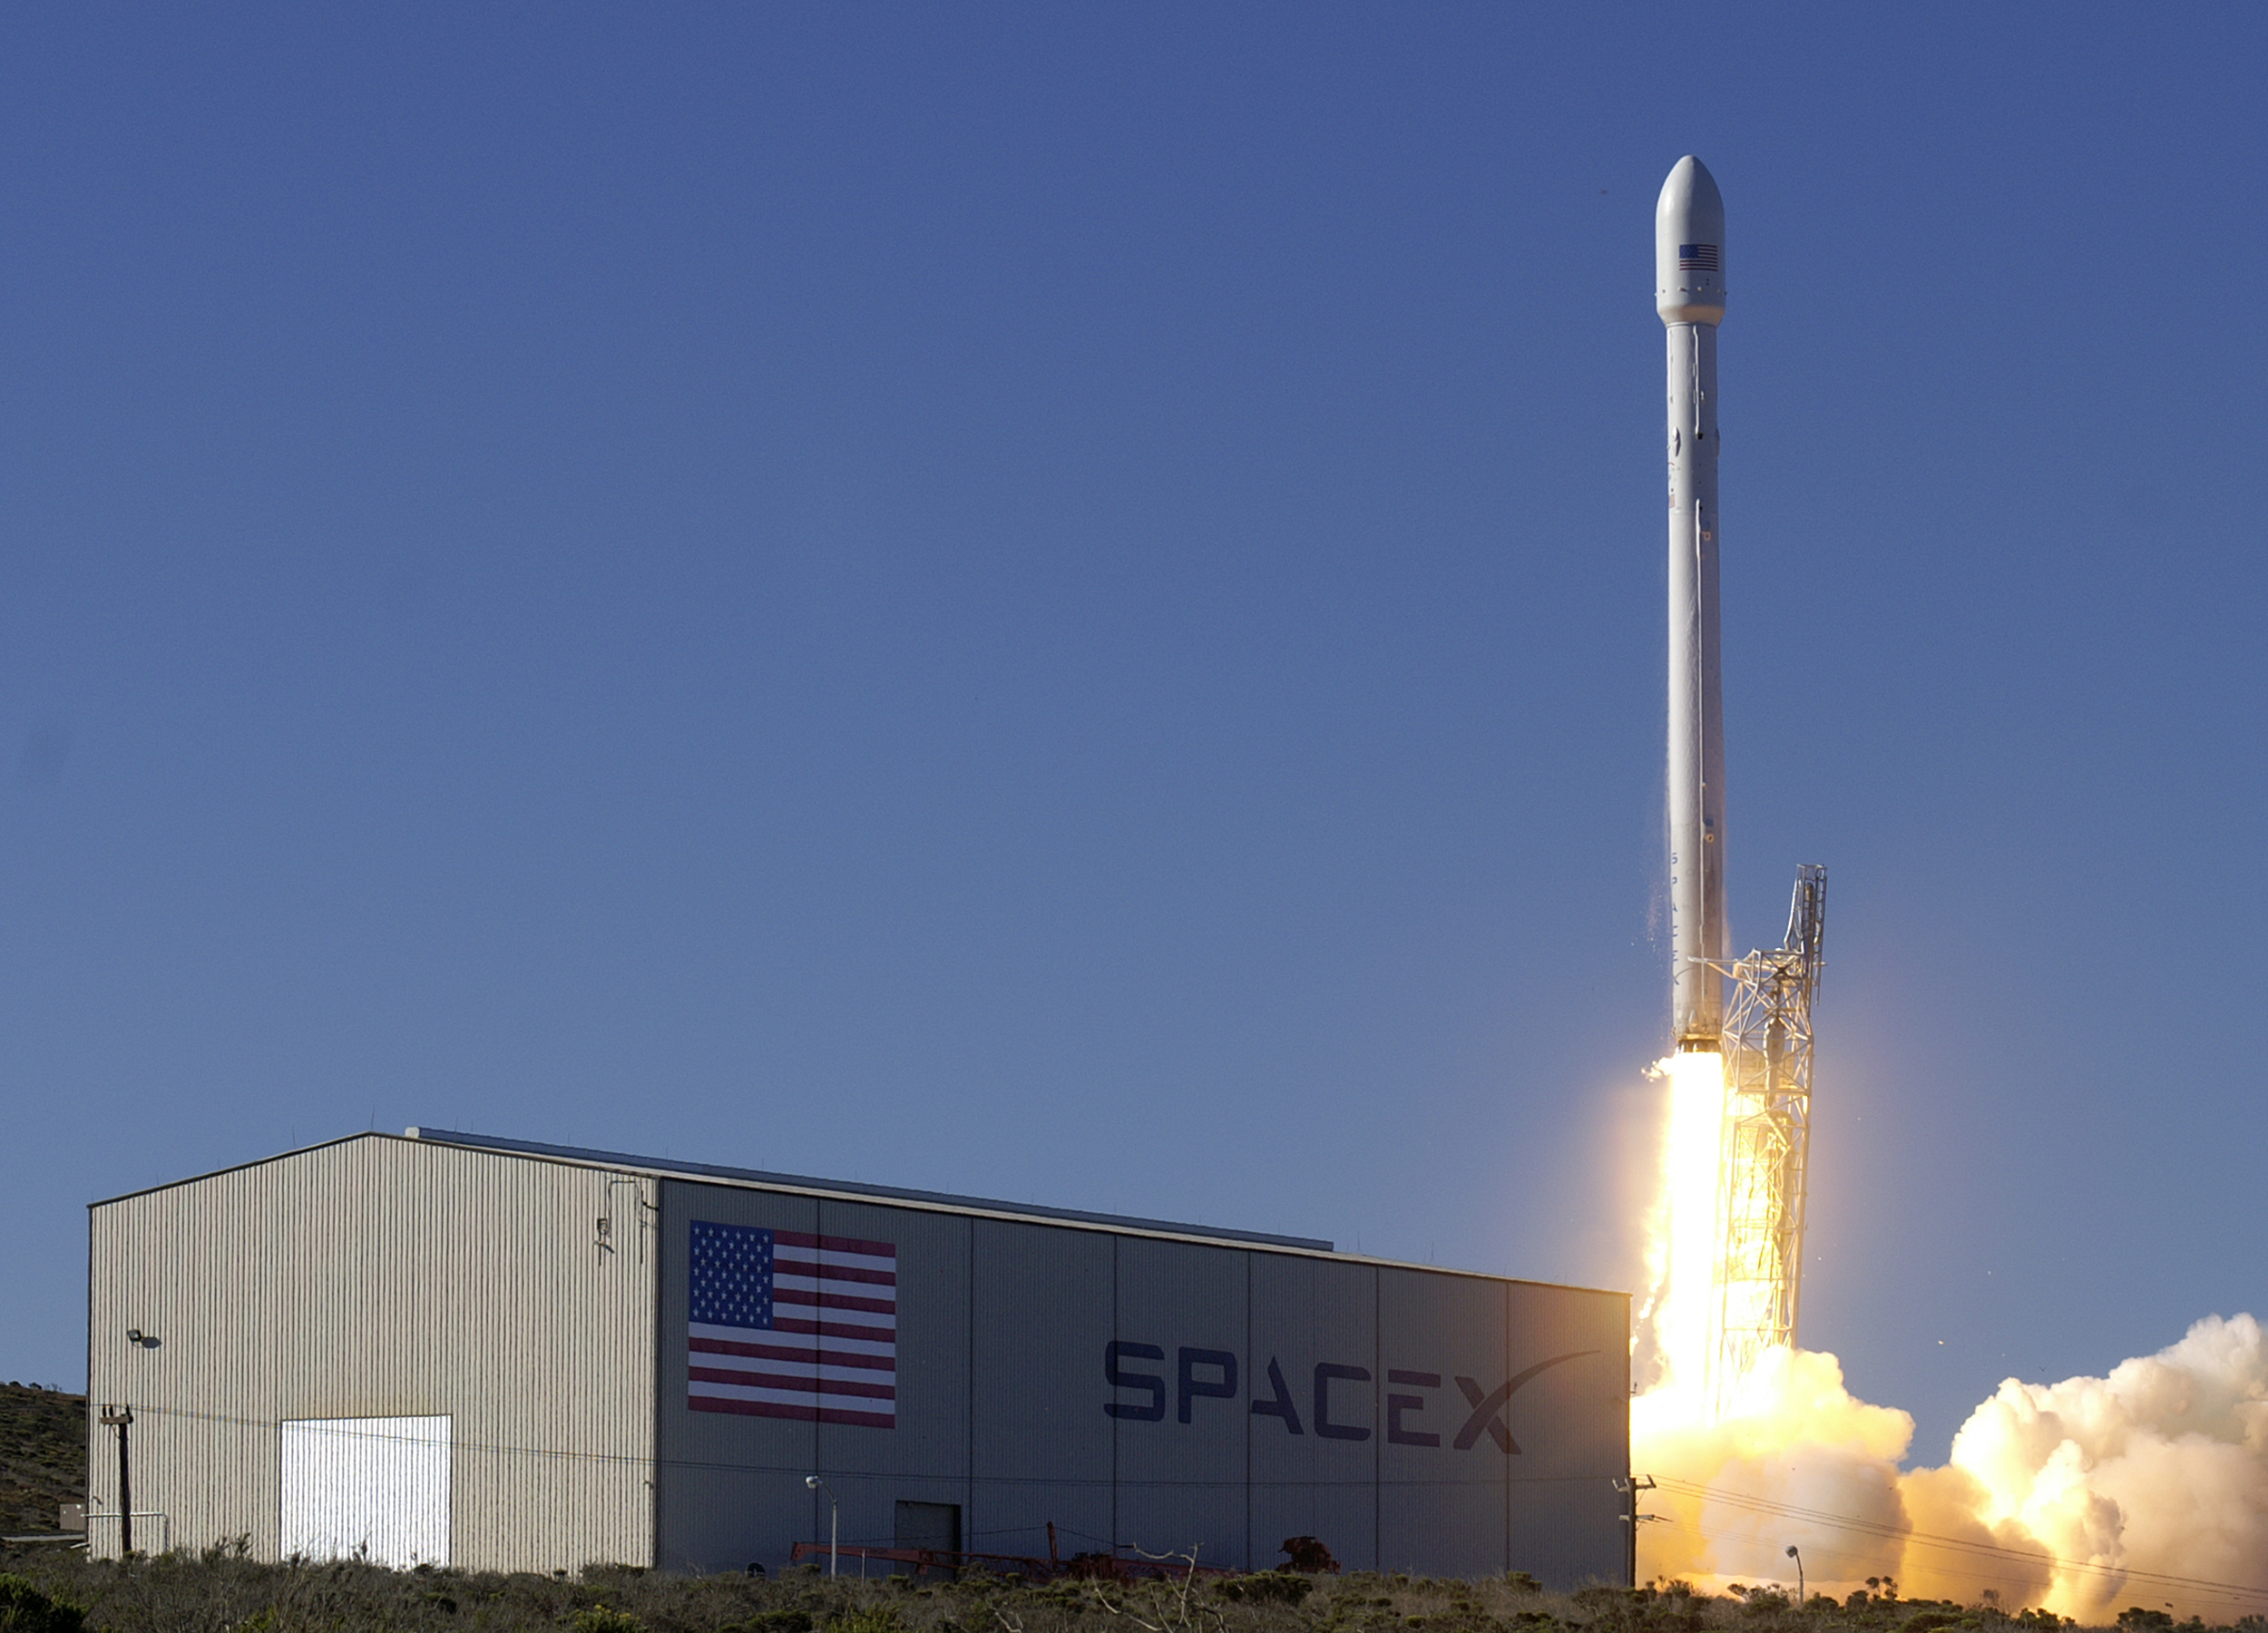 Falcon 9 v1.1 blasts off. Credit: SpaceX